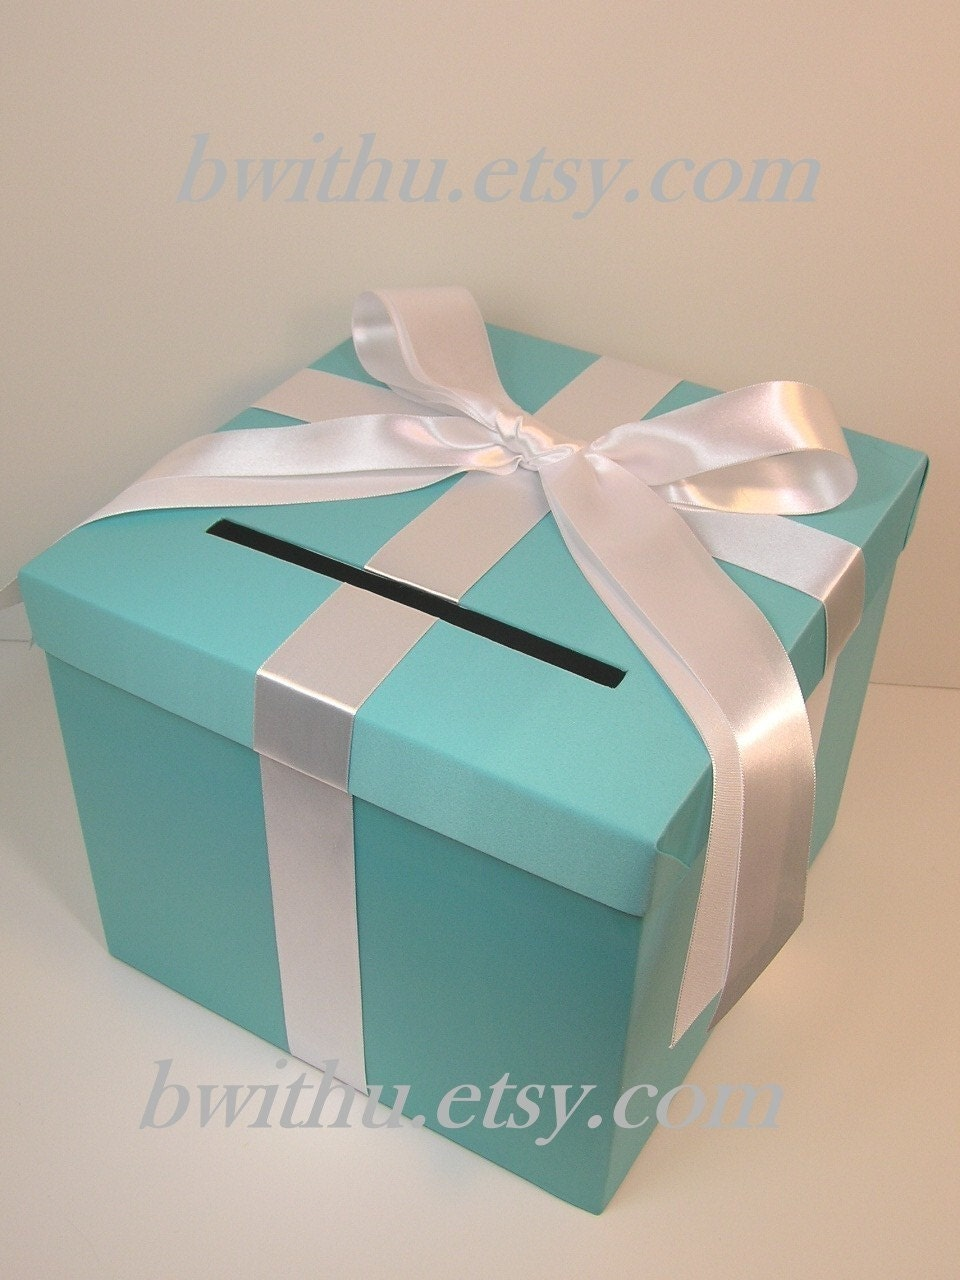 Wedding Gift Box Suggestions : Blue Wedding Card Box Gift Card Box Money Box by bwithustudio